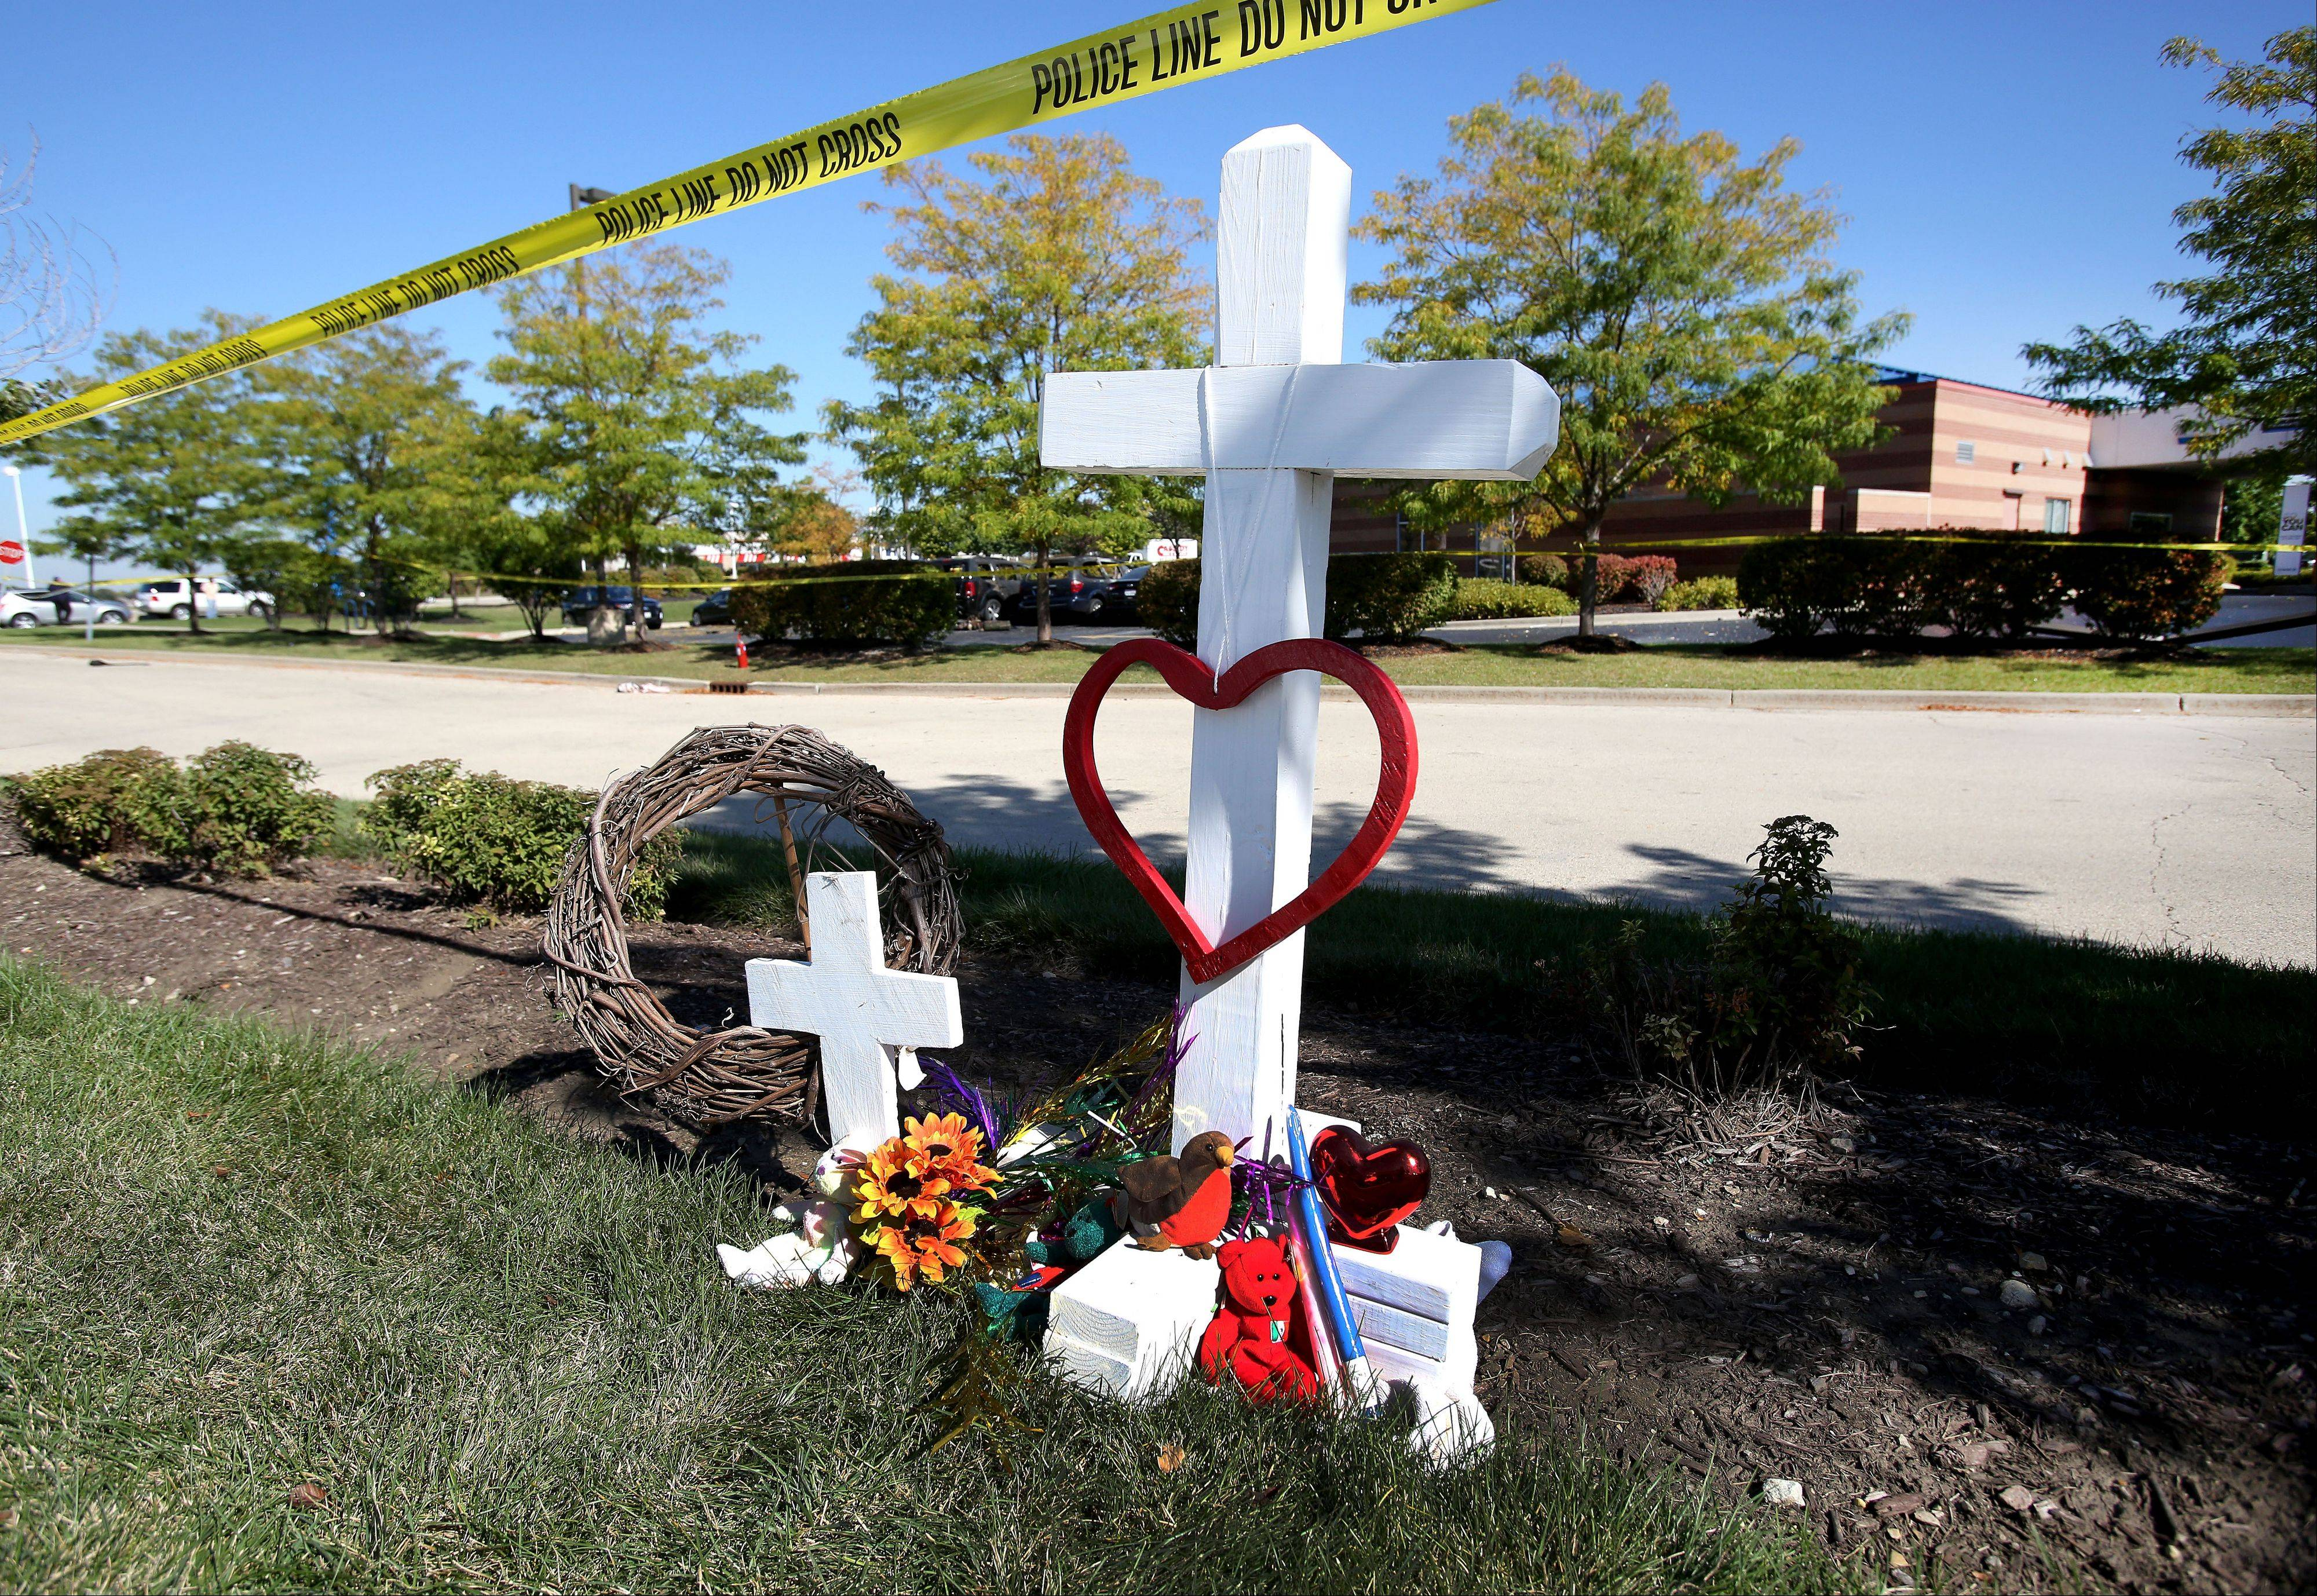 A makeshift memorial marks the spot where a surgeon and his wife from Kentucky were killed when their plane crashed near Clow International Airport in Bolingbrook.